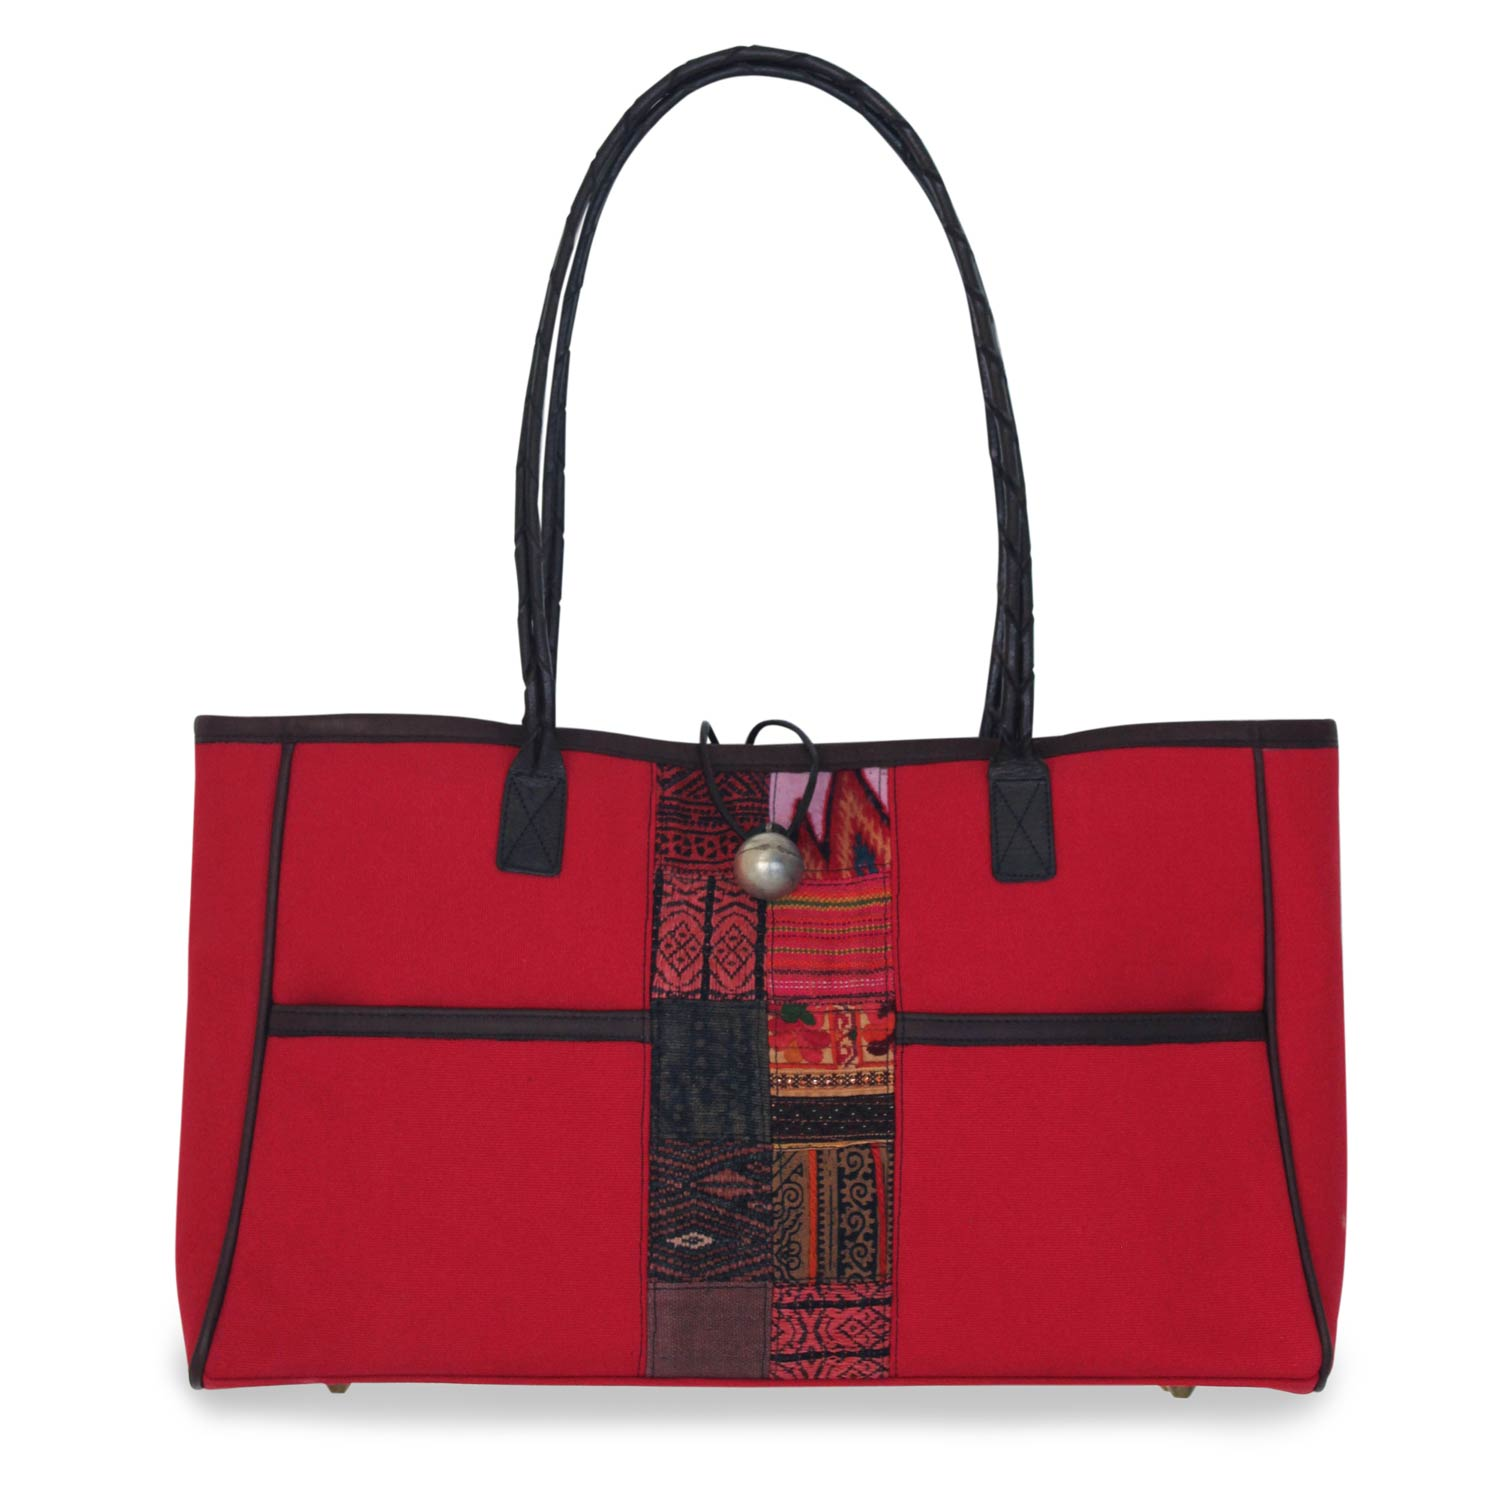 Cotton shoulder bag, 'Tribal Red' Leather Accents Tote